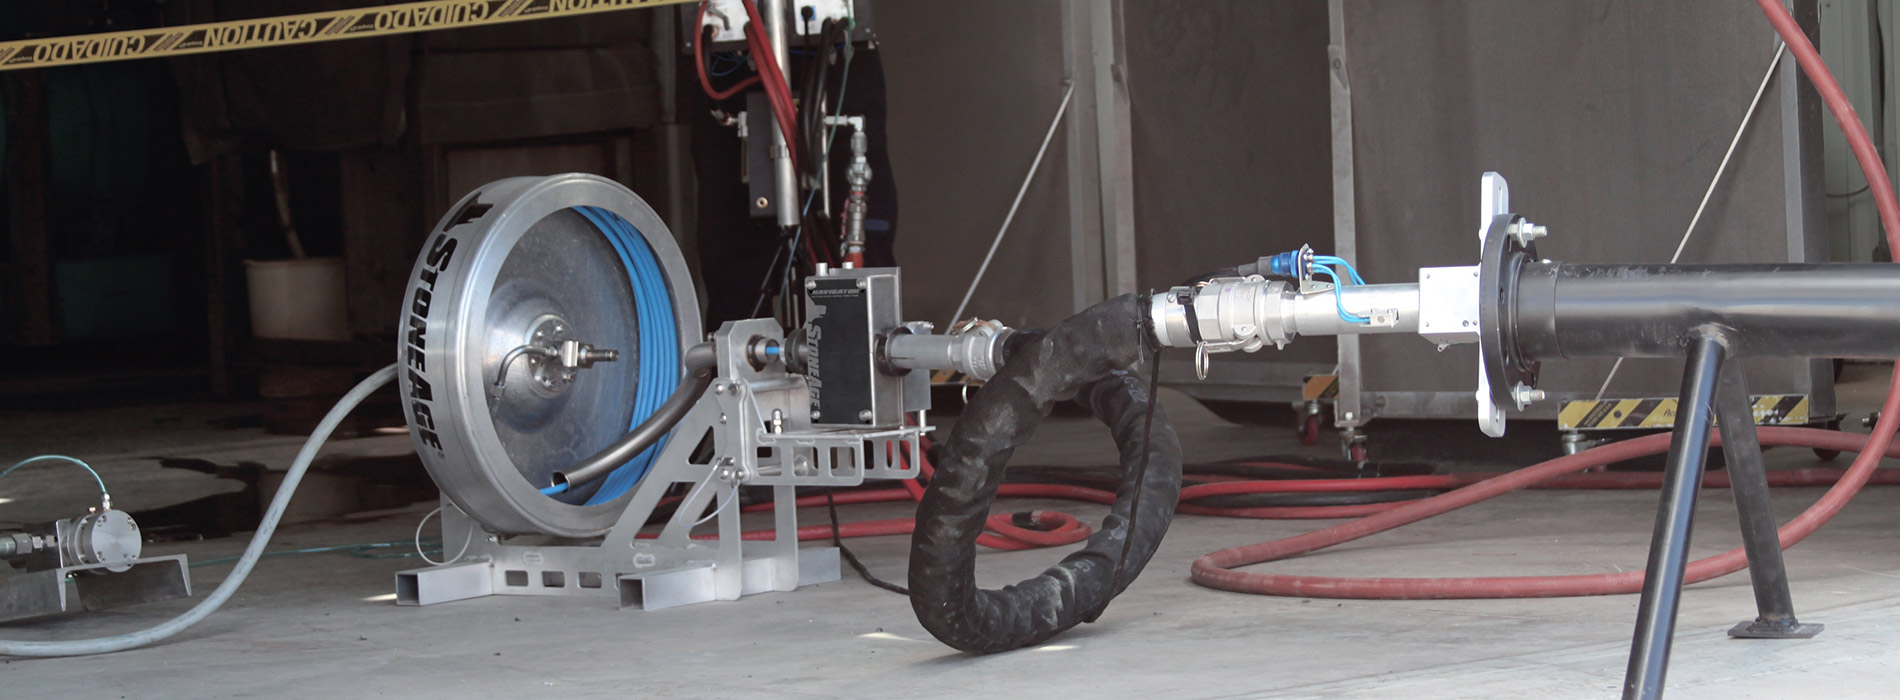 Navigator rotary hose device for pipe cleaning